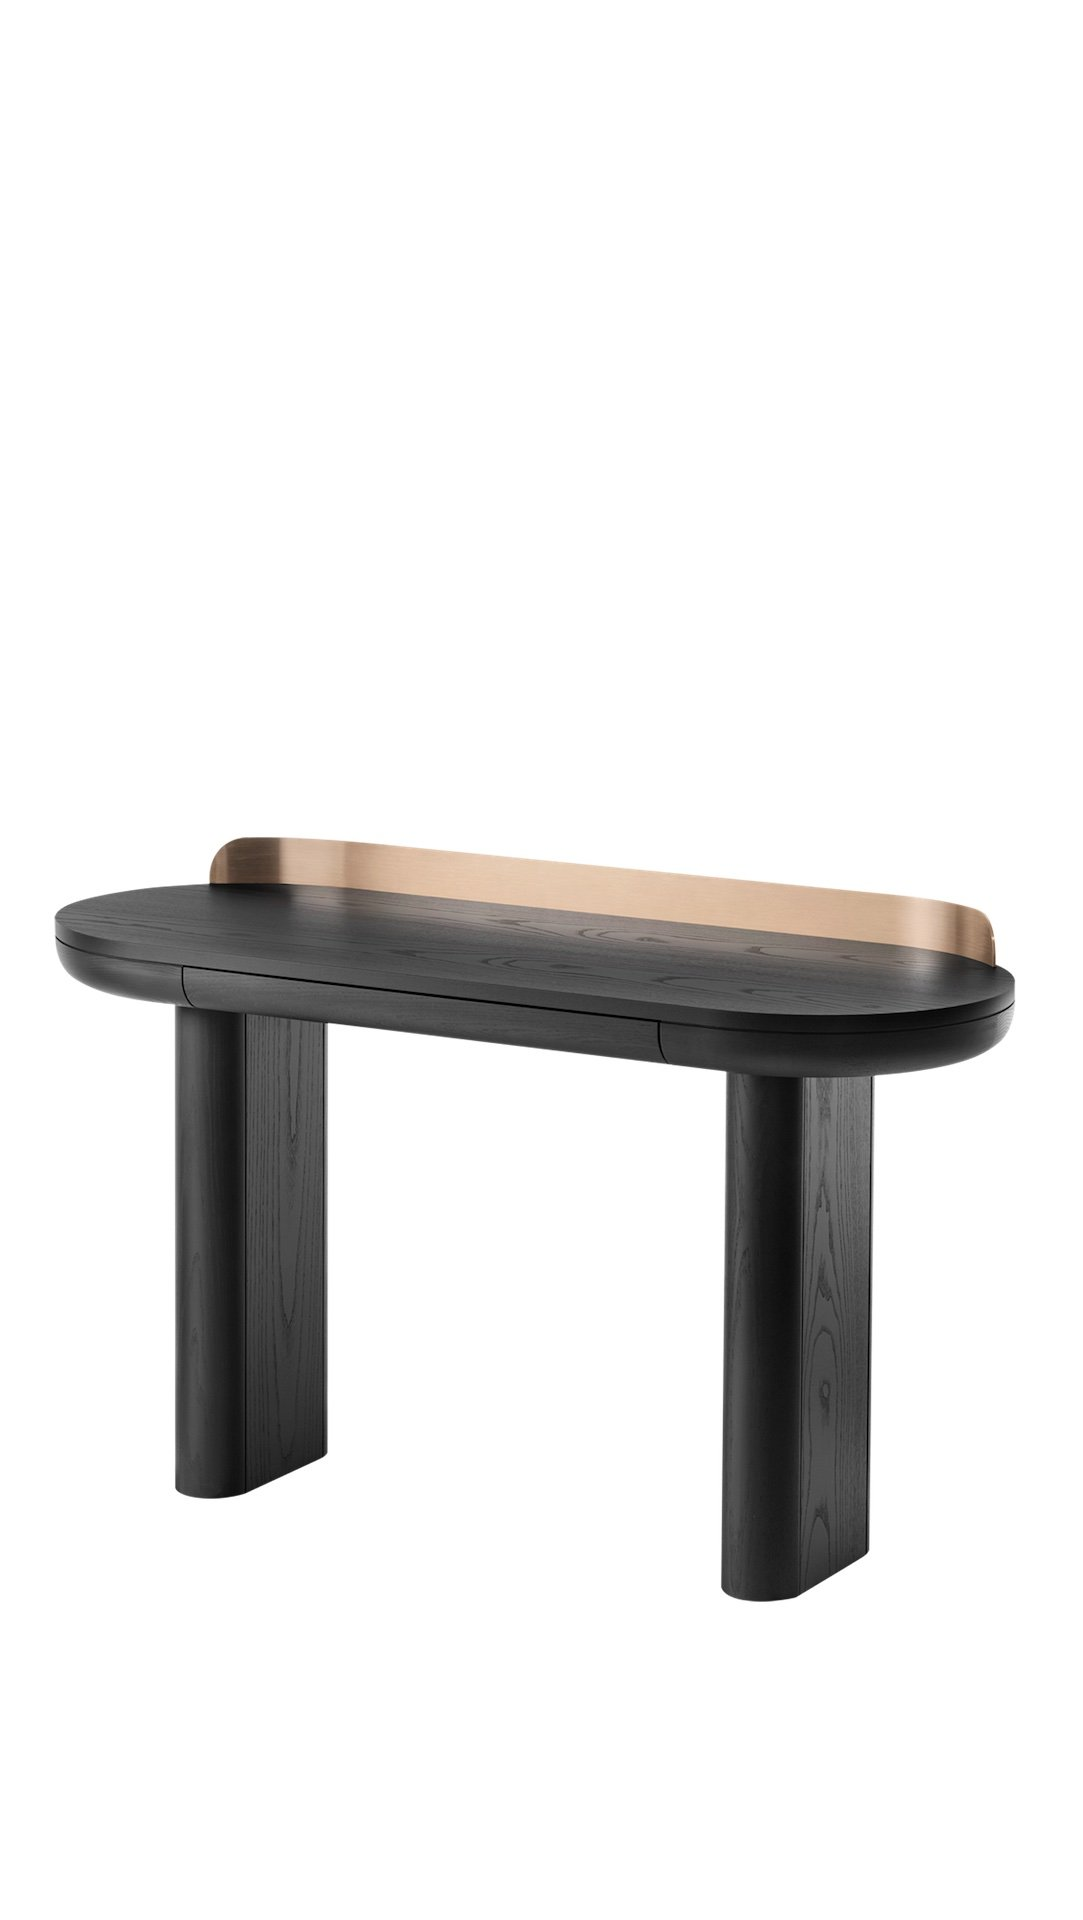 Jumbo Desk from Miniforms, designed by Paolo Cappello